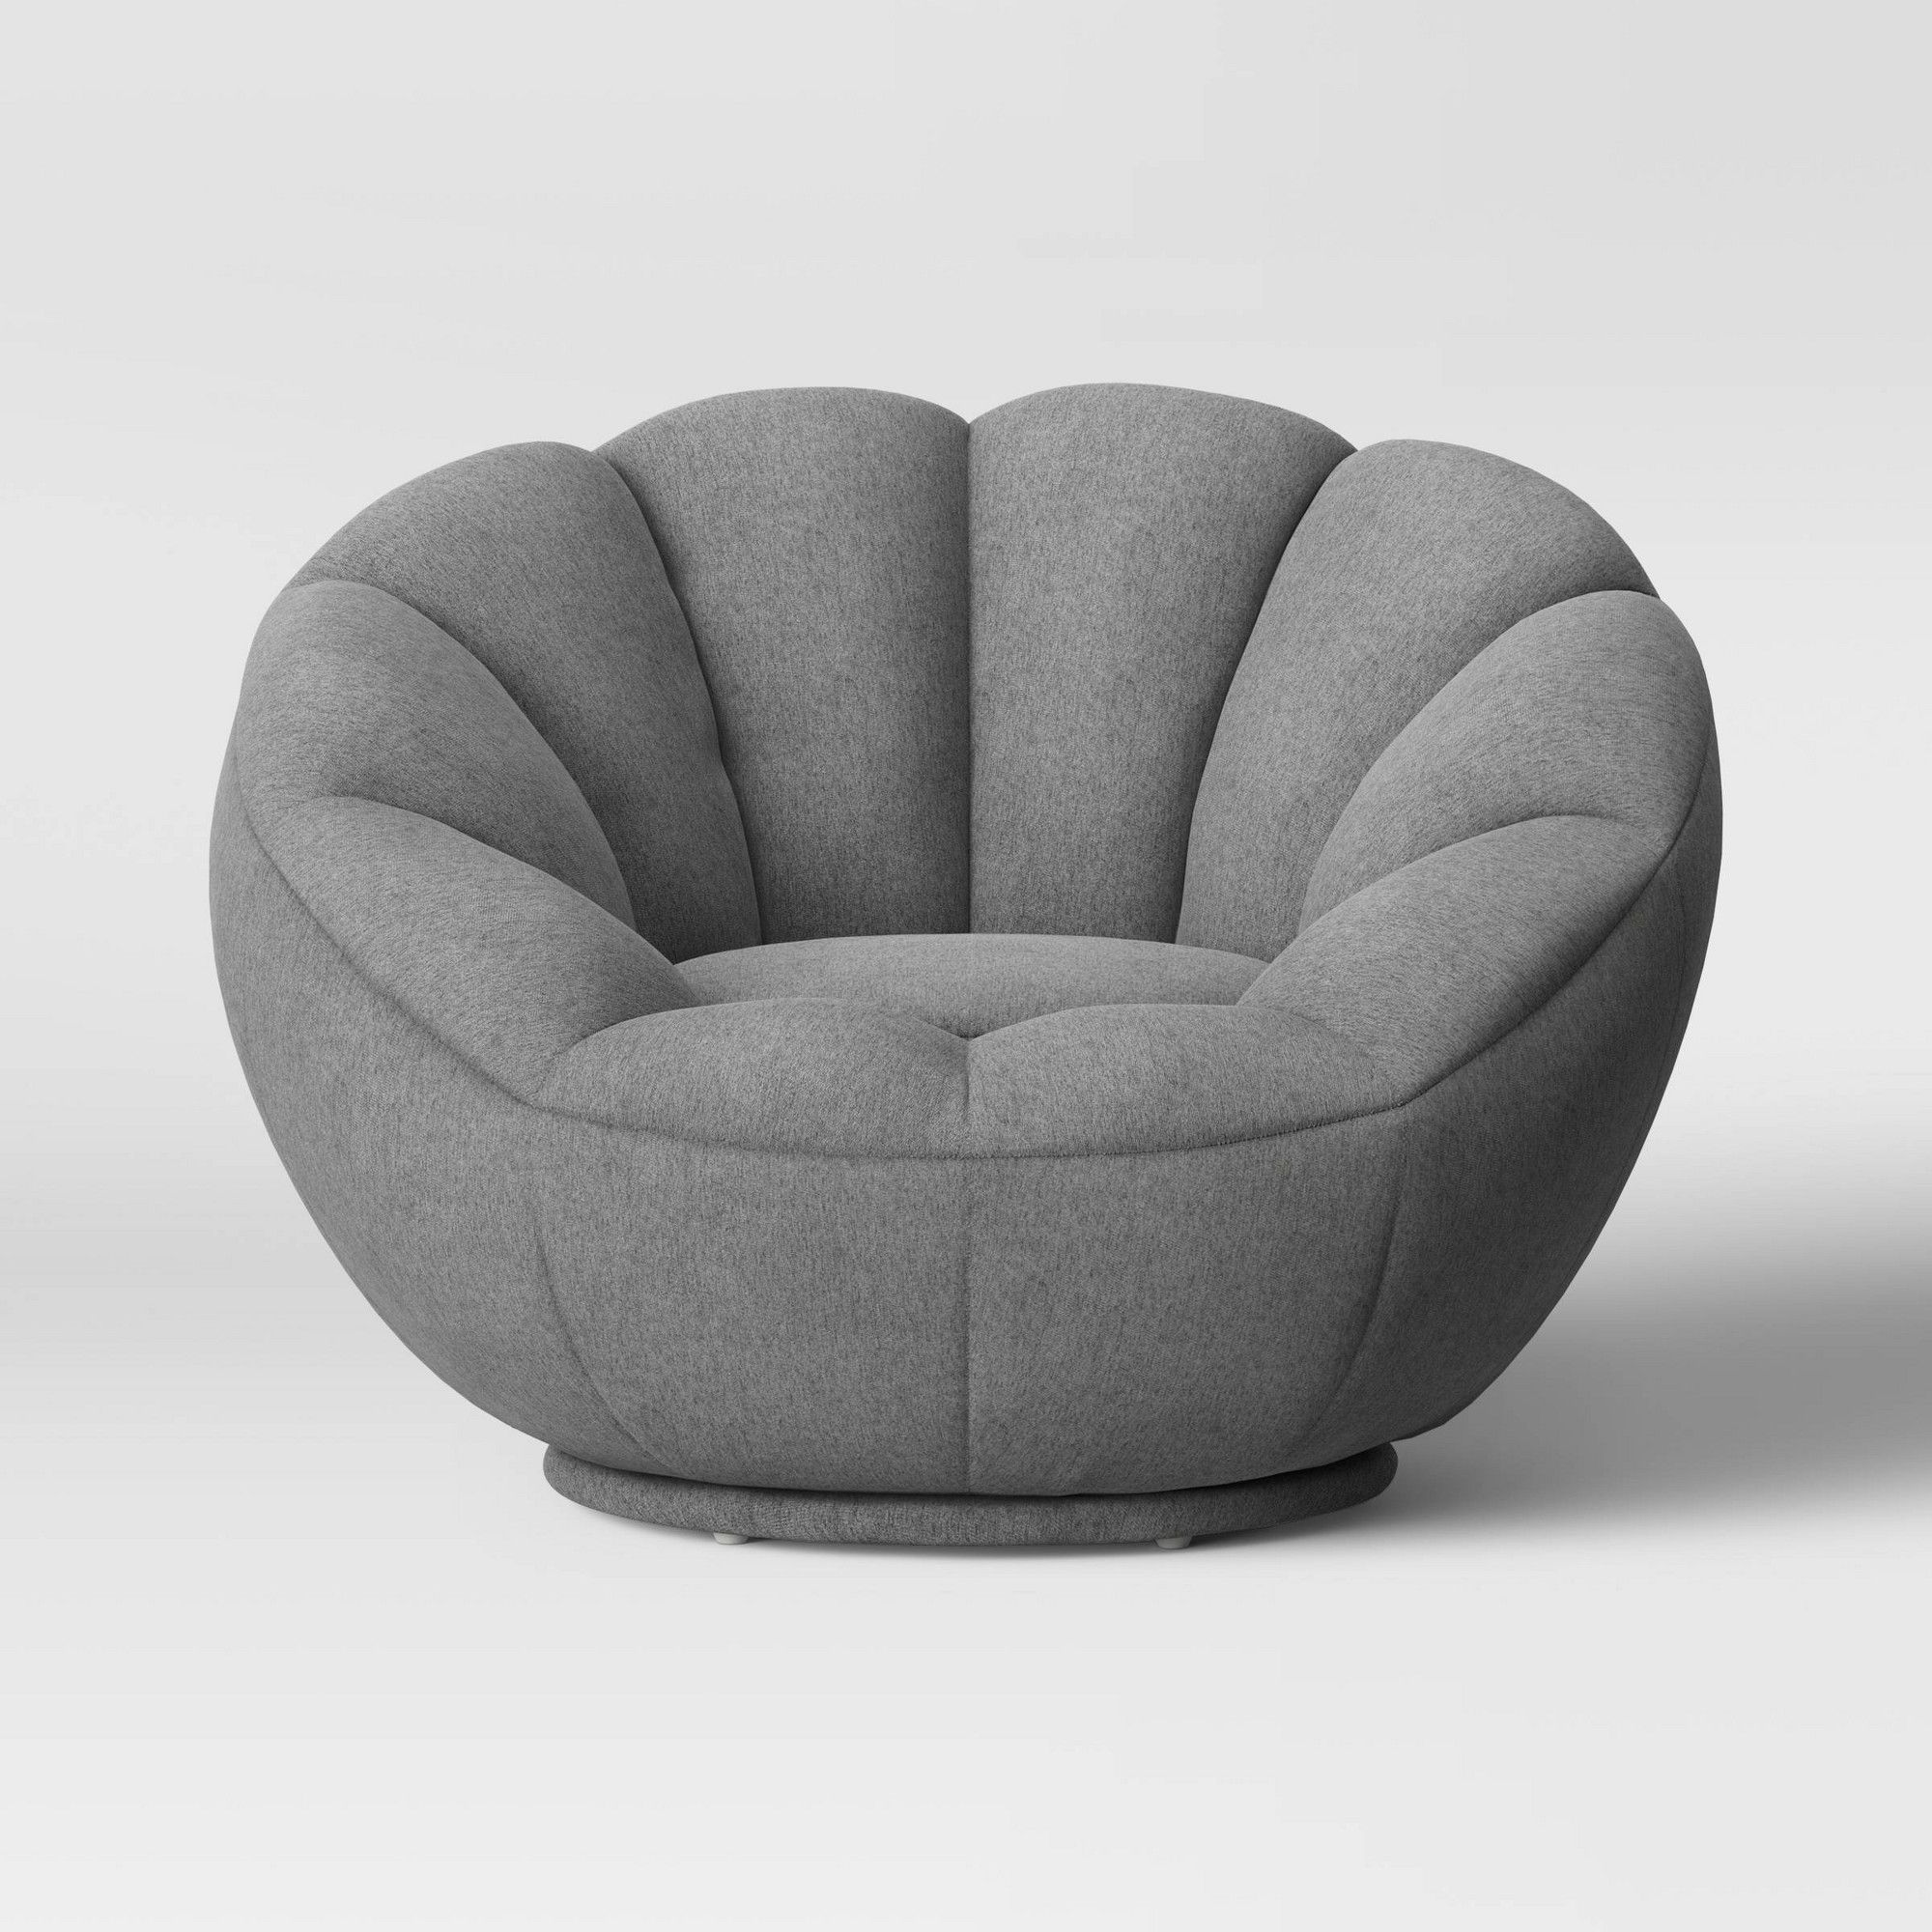 Fantastic Low Profile Swivel Tulip Chair Gray Room Essentials In Beatyapartments Chair Design Images Beatyapartmentscom